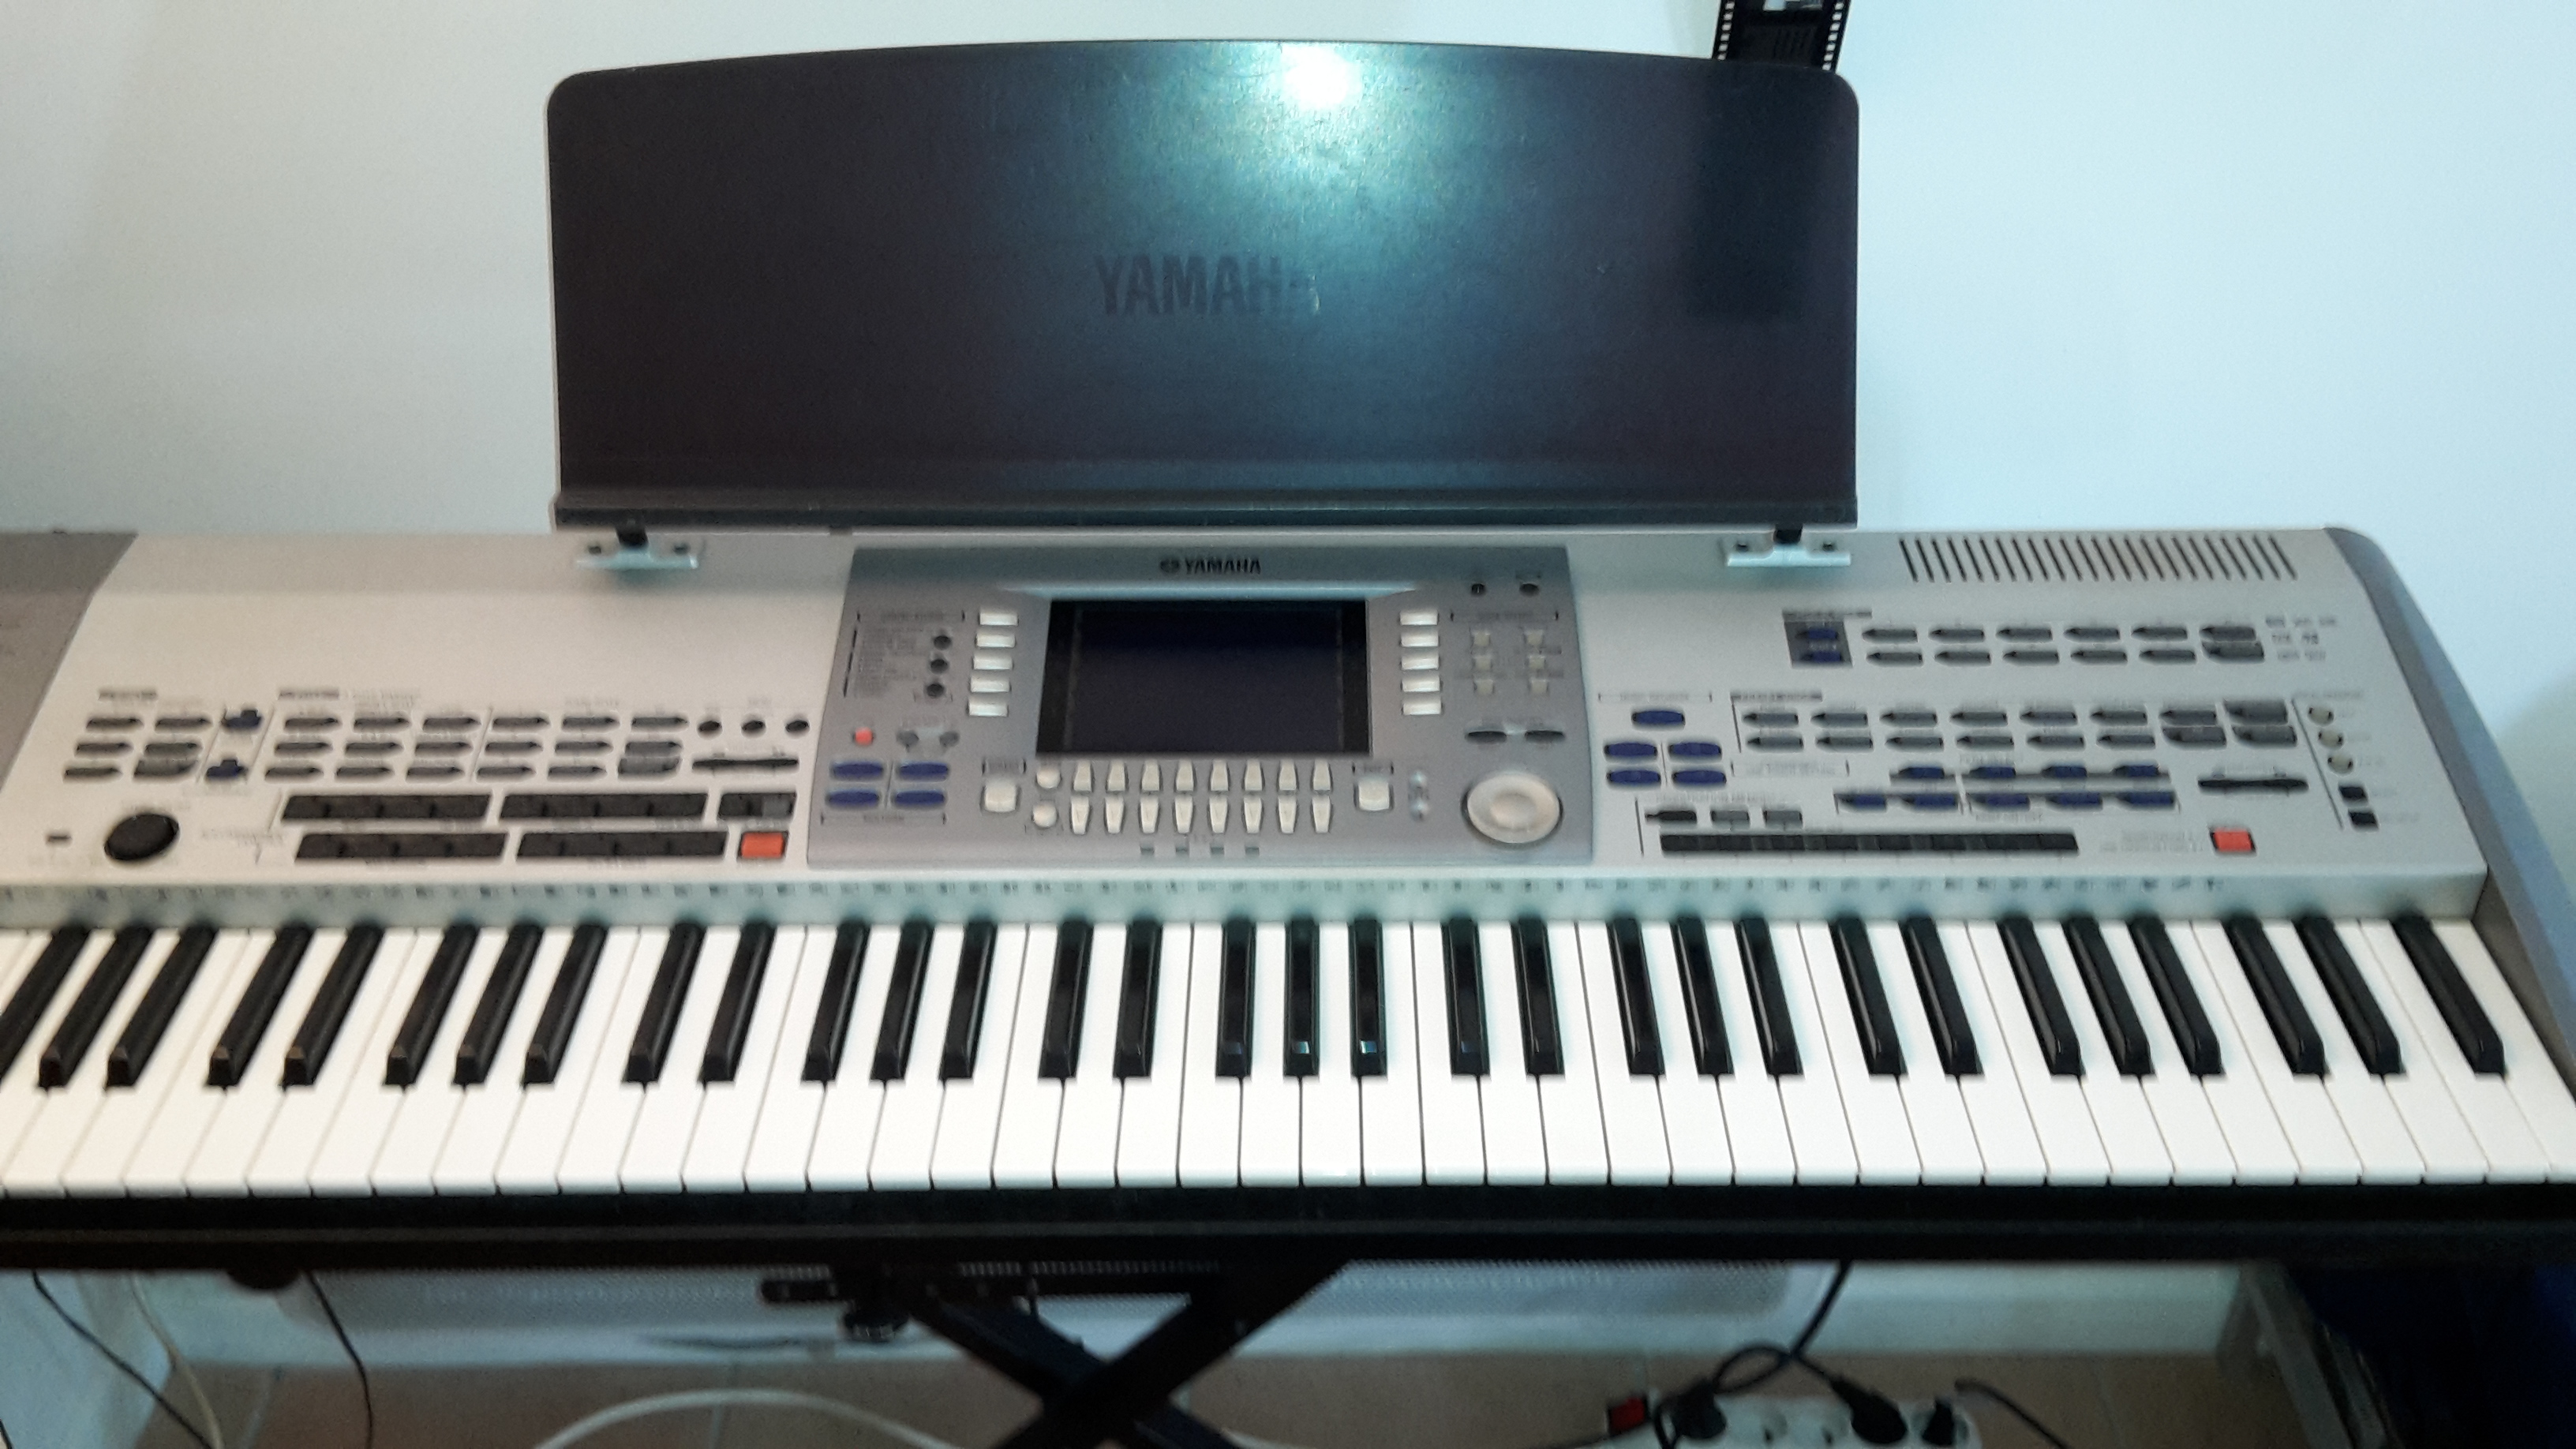 Yamaha psr 9000 pro image 1887812 audiofanzine for Yamaha professional keyboard price